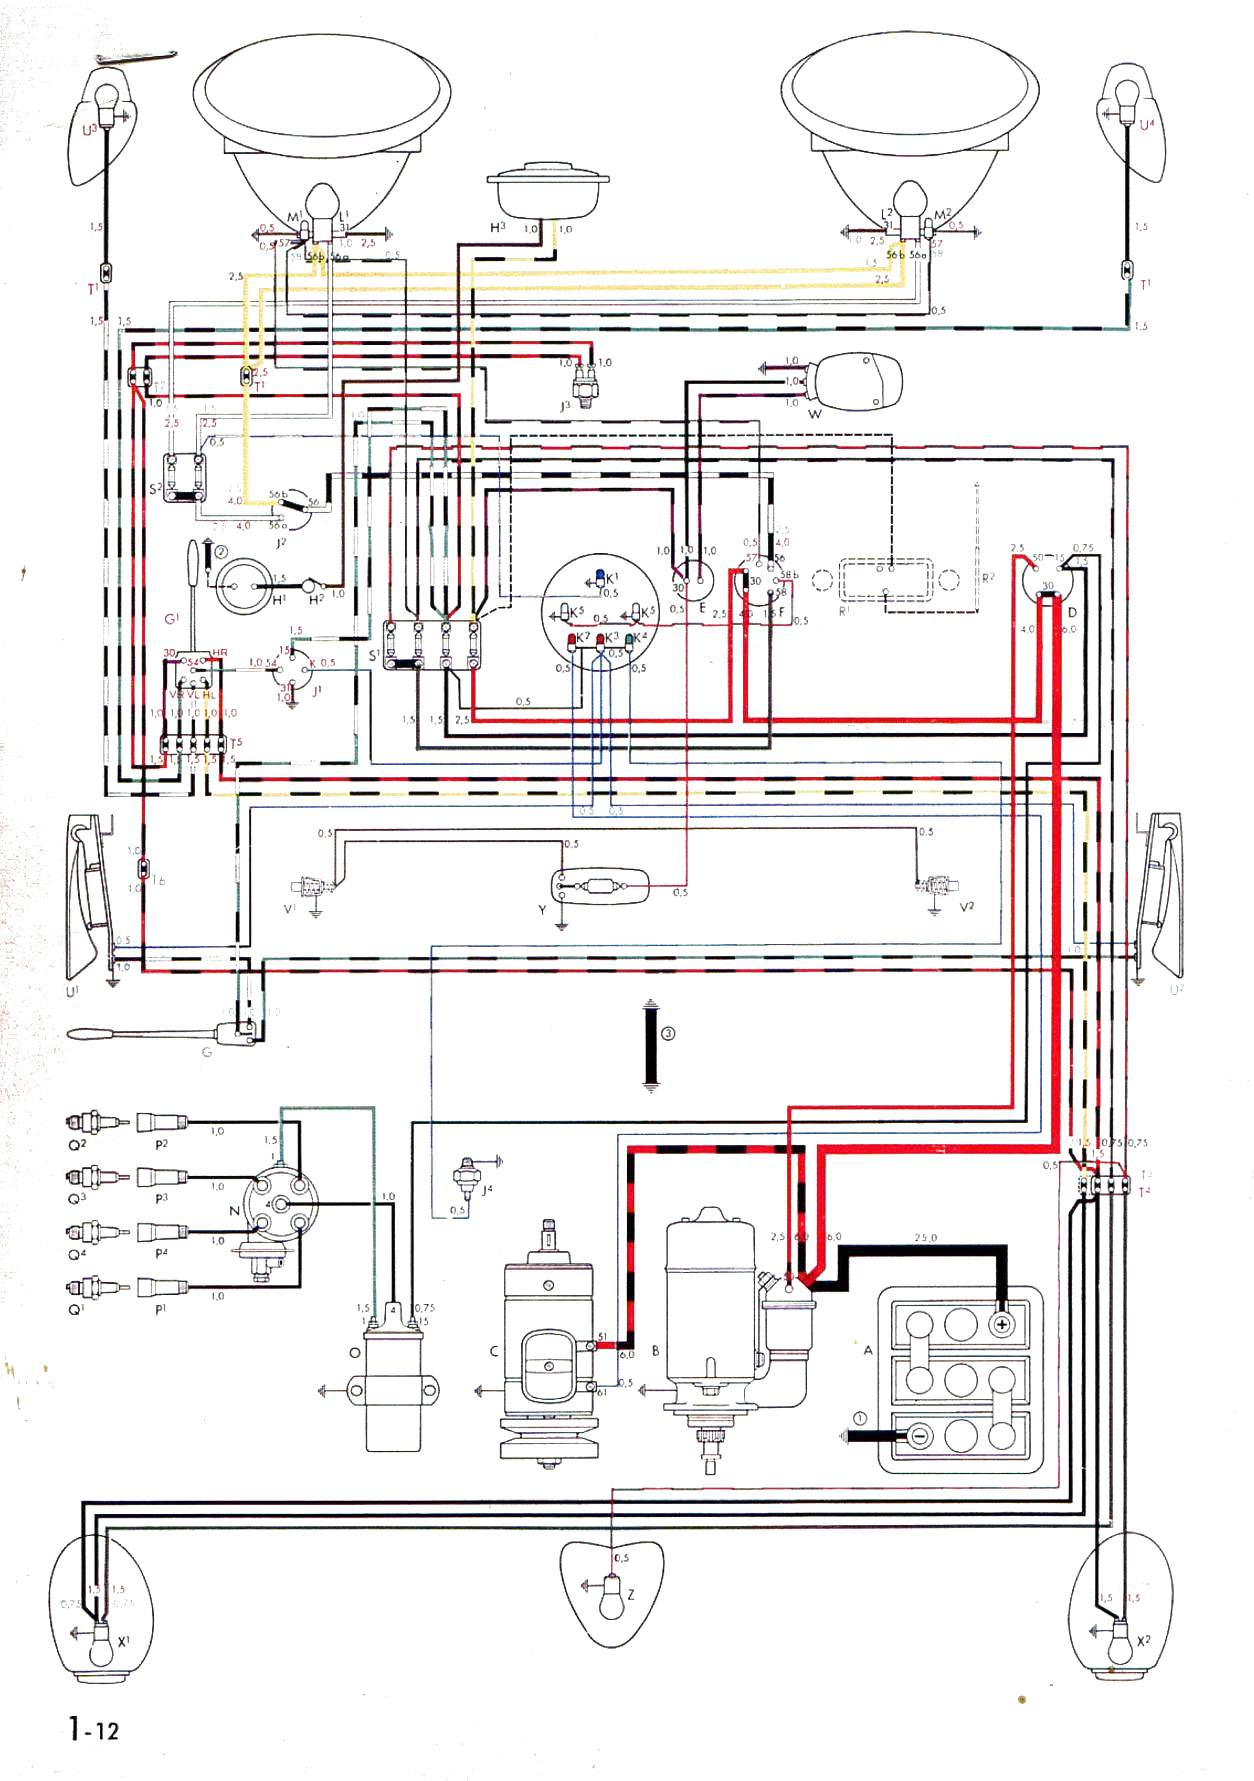 VintageBus.Com - VW Bus (and other) Wiring Diagrams on 1990 7 3 injection pump diagram, injection pump wiring diagram, 7.3 injector harness, 6 6 powerstroke injector diagram, 05 ford 6.0l injector harness diagram, 6 liter powerstroke valve diagram, 7.3 injector operation, ford 6 0 injector harness diagram,